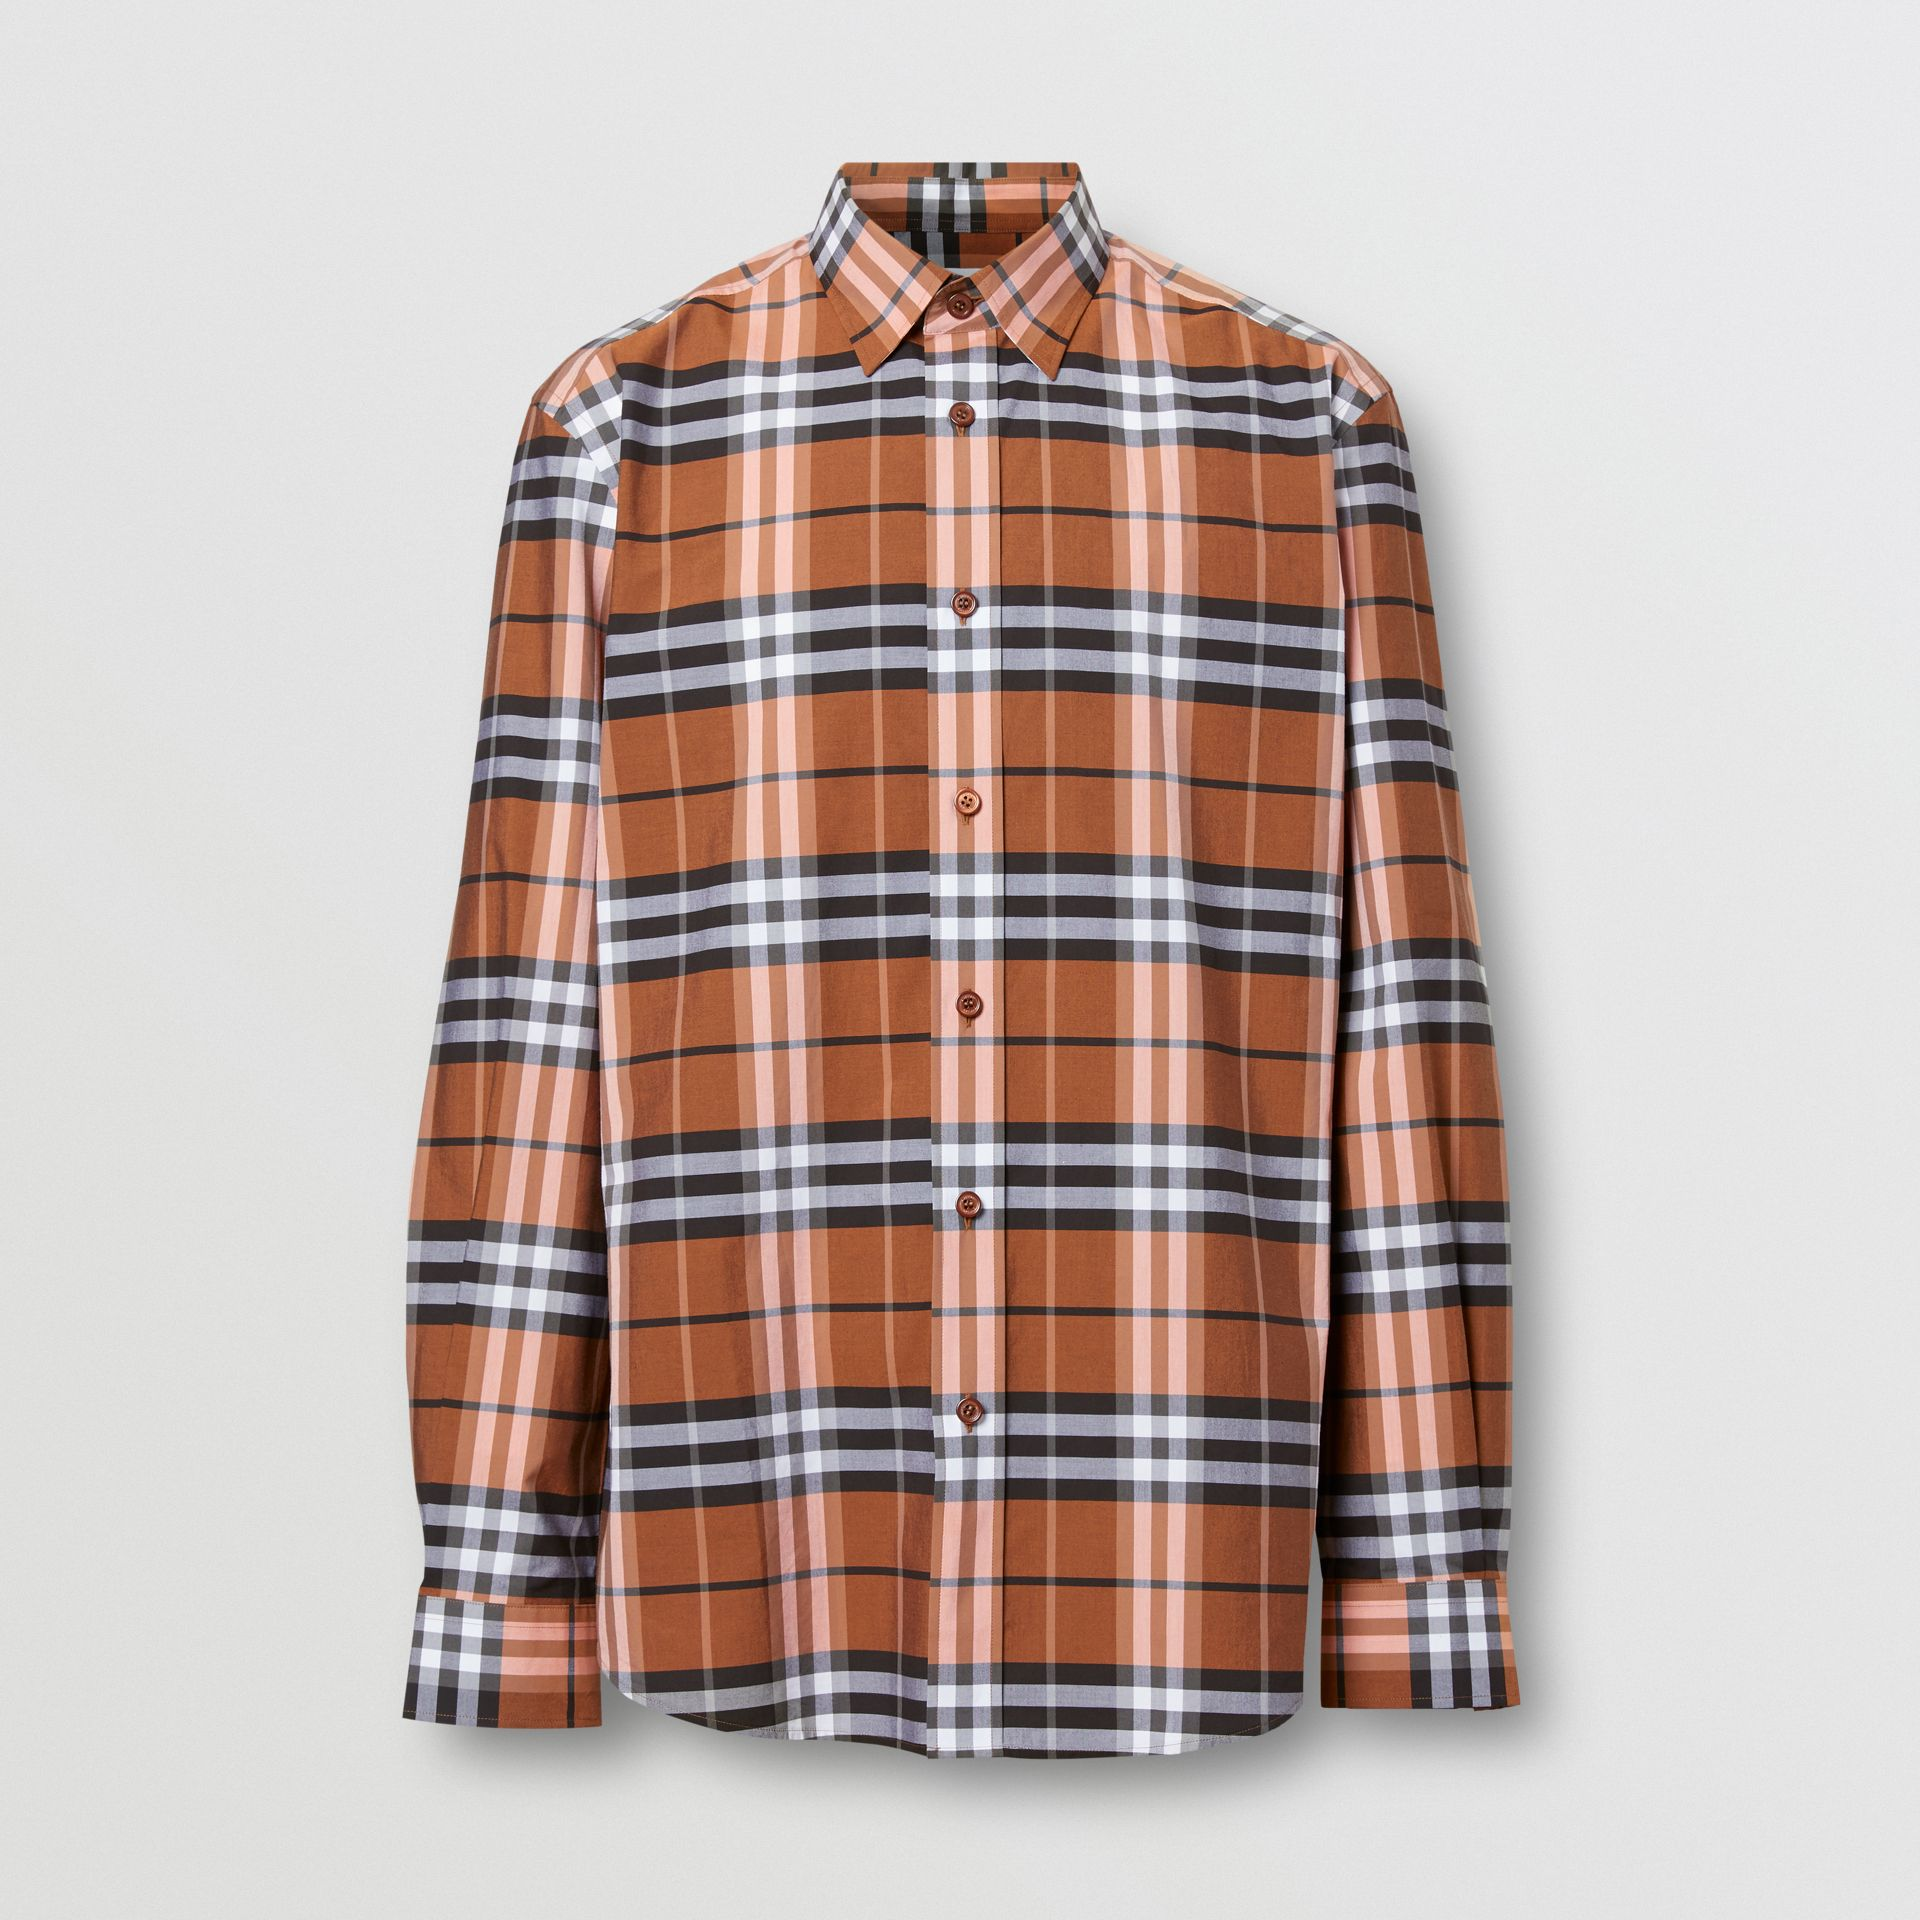 Vintage Check Cotton Poplin Shirt in Clementine - Men | Burberry - gallery image 3